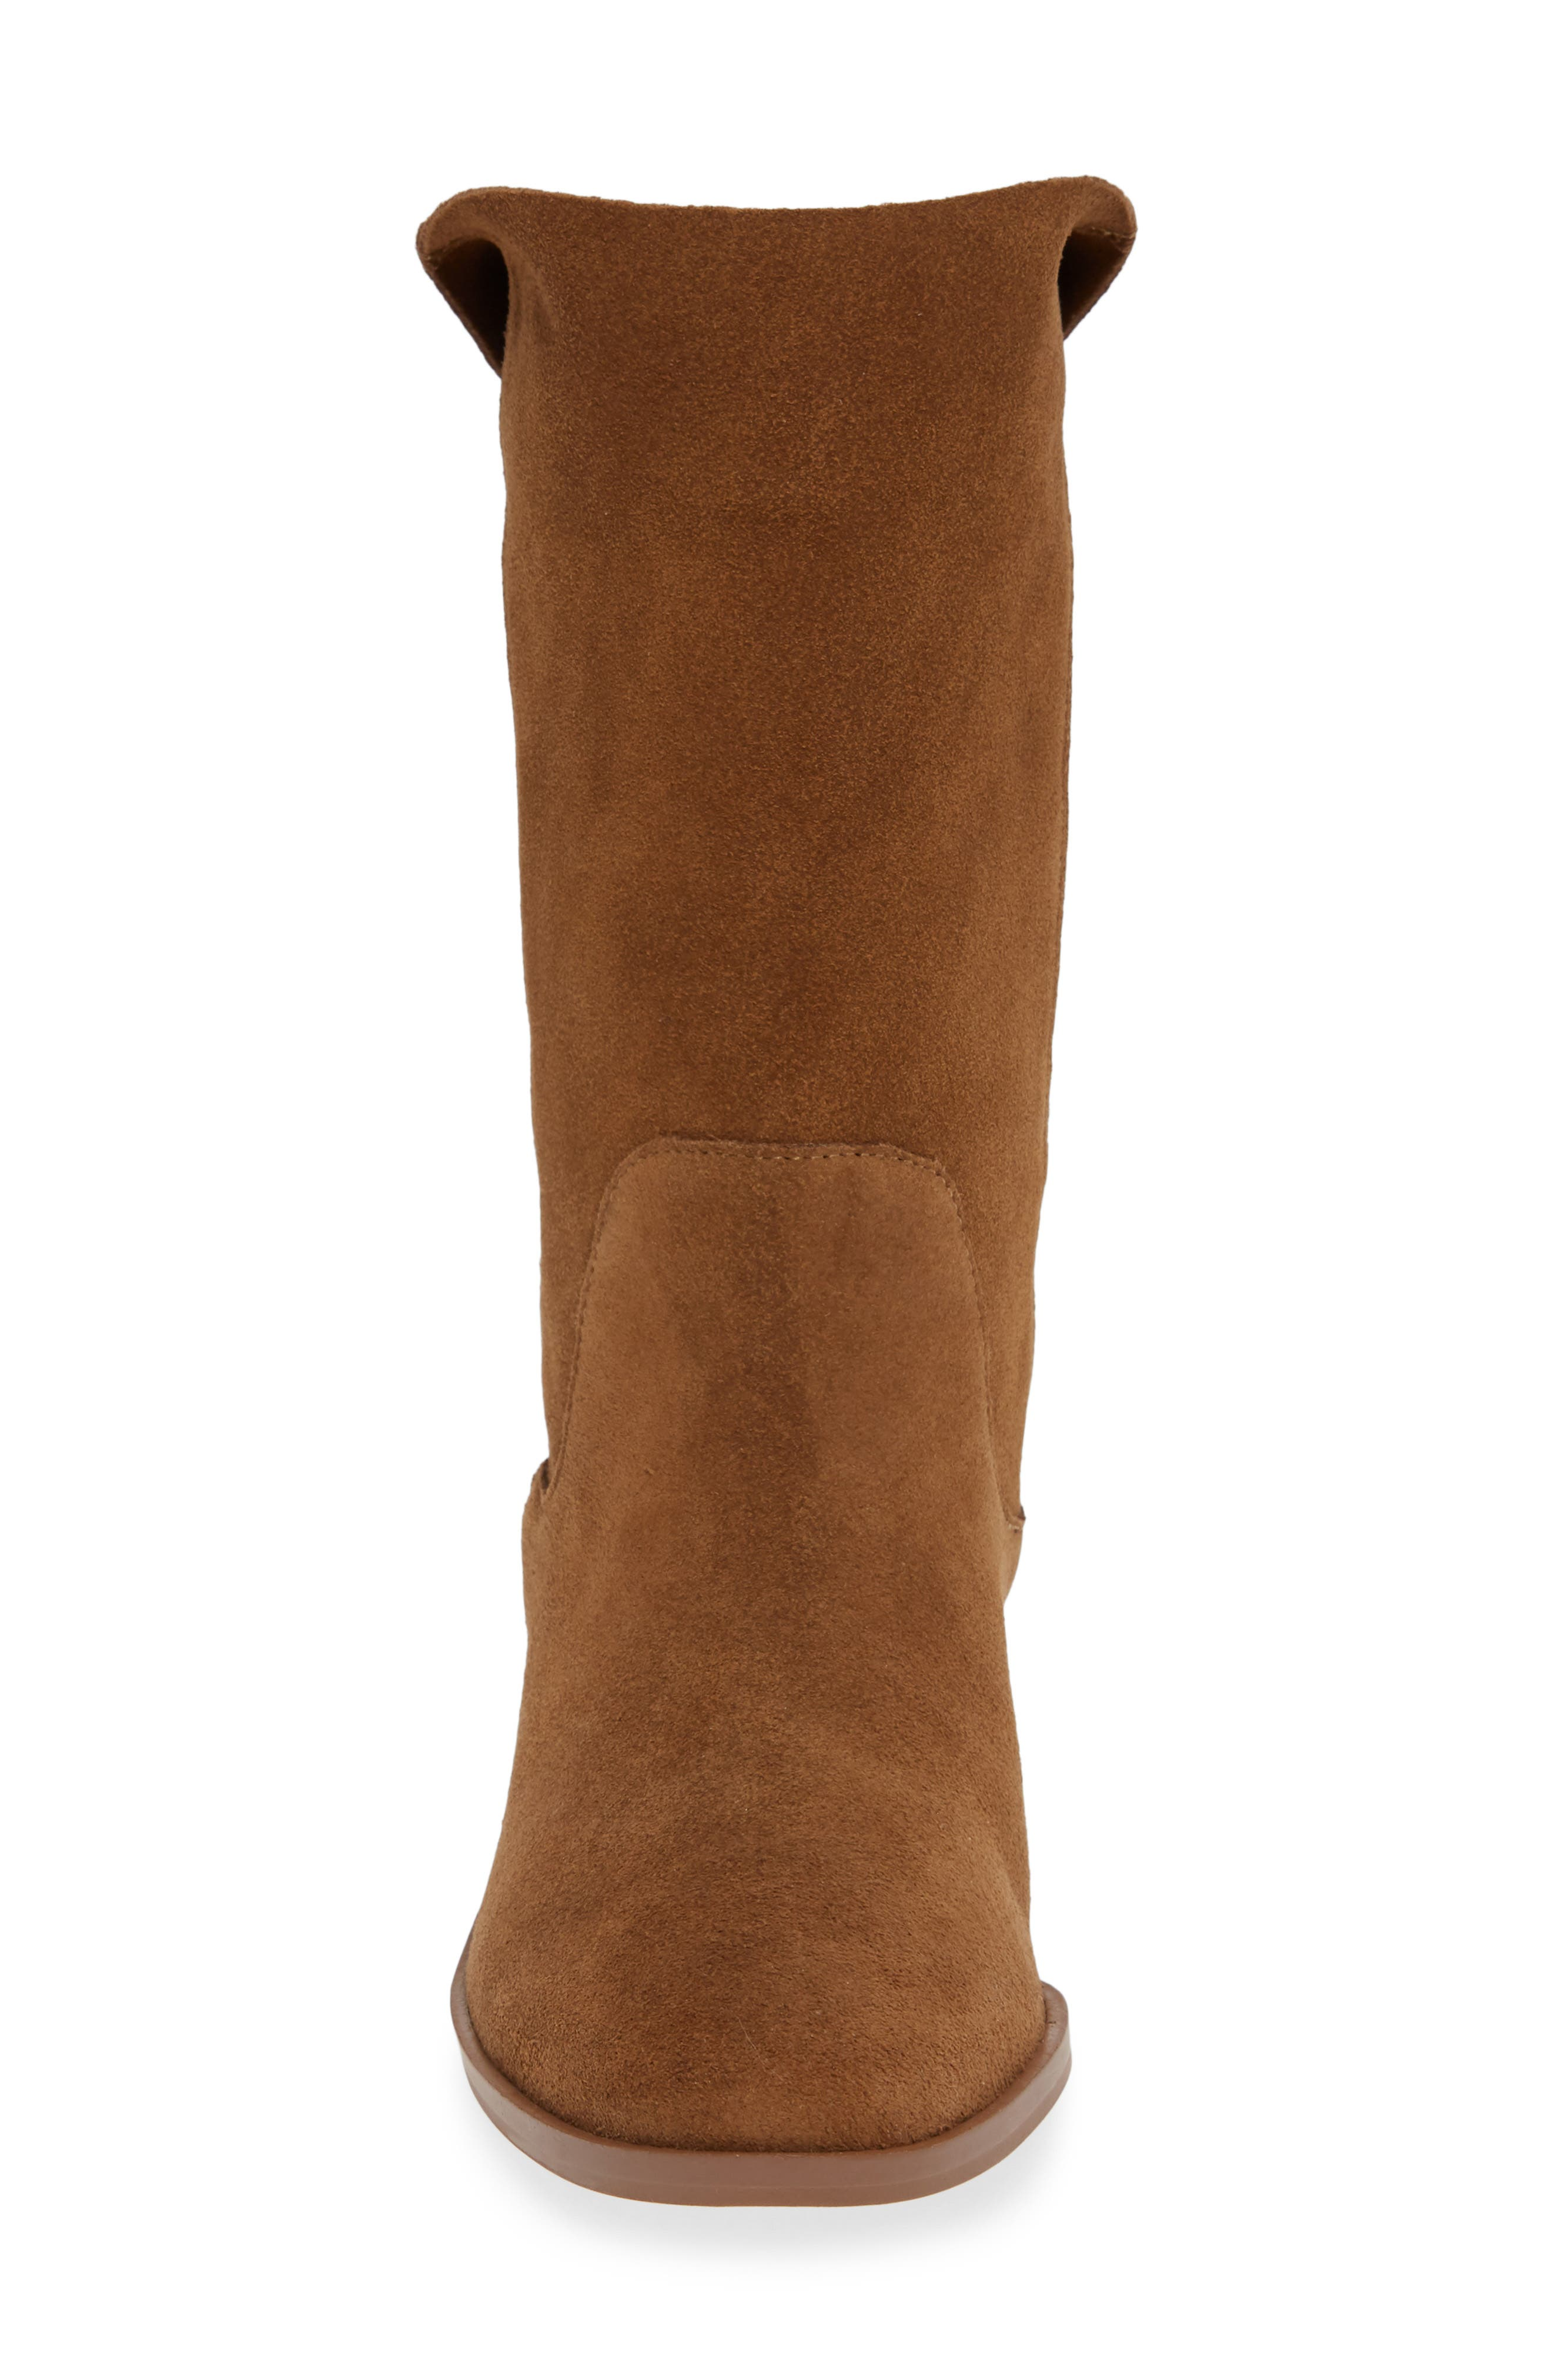 Calanth Bootie,                             Alternate thumbnail 4, color,                             TOBACCO SUEDE